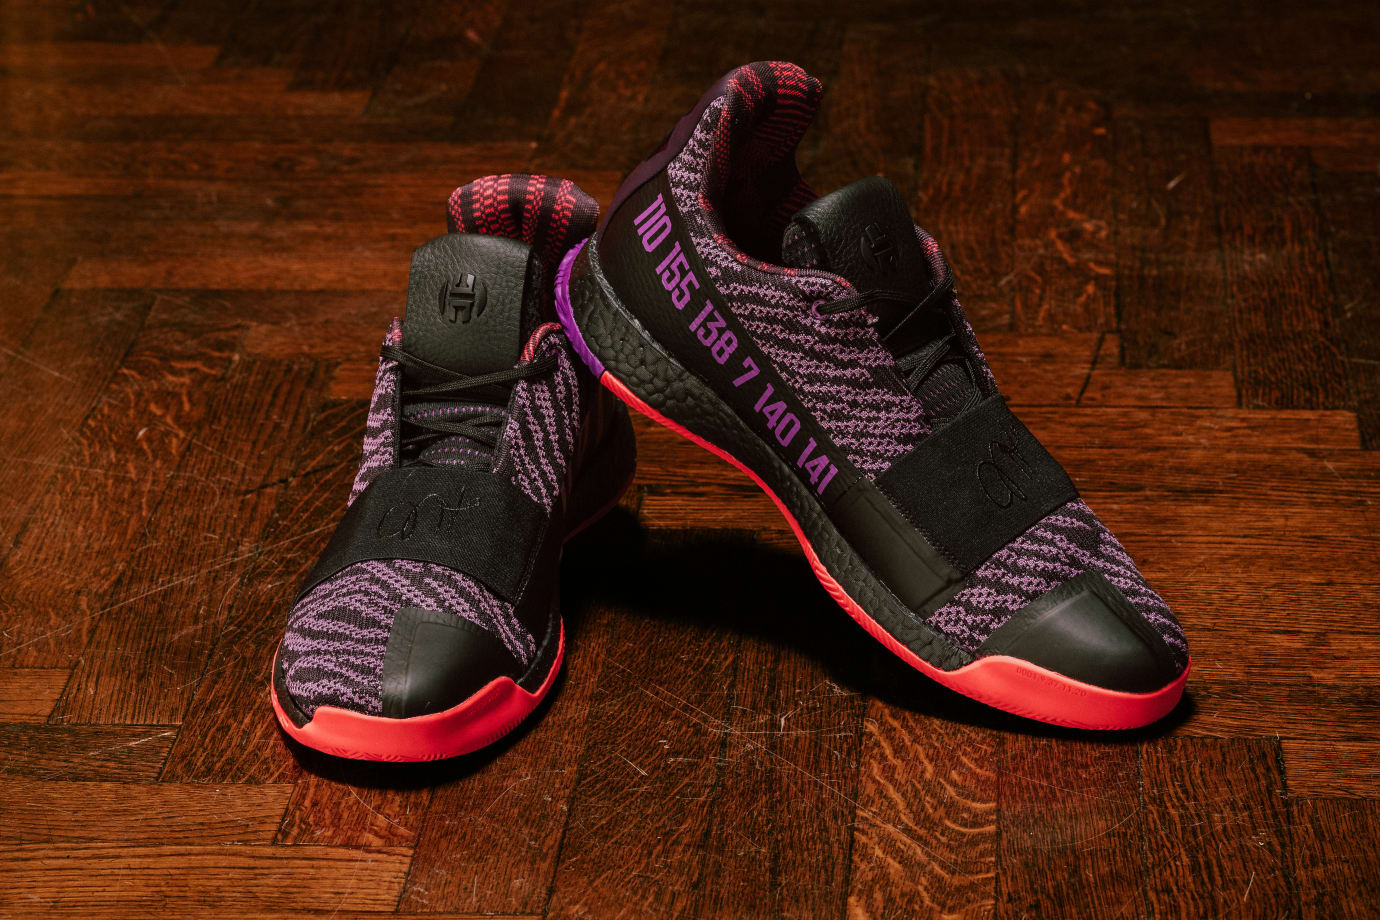 abd27cd0e73 Image via Adidas Adidas 2019 Black History Month Collection Harden Vol. 3